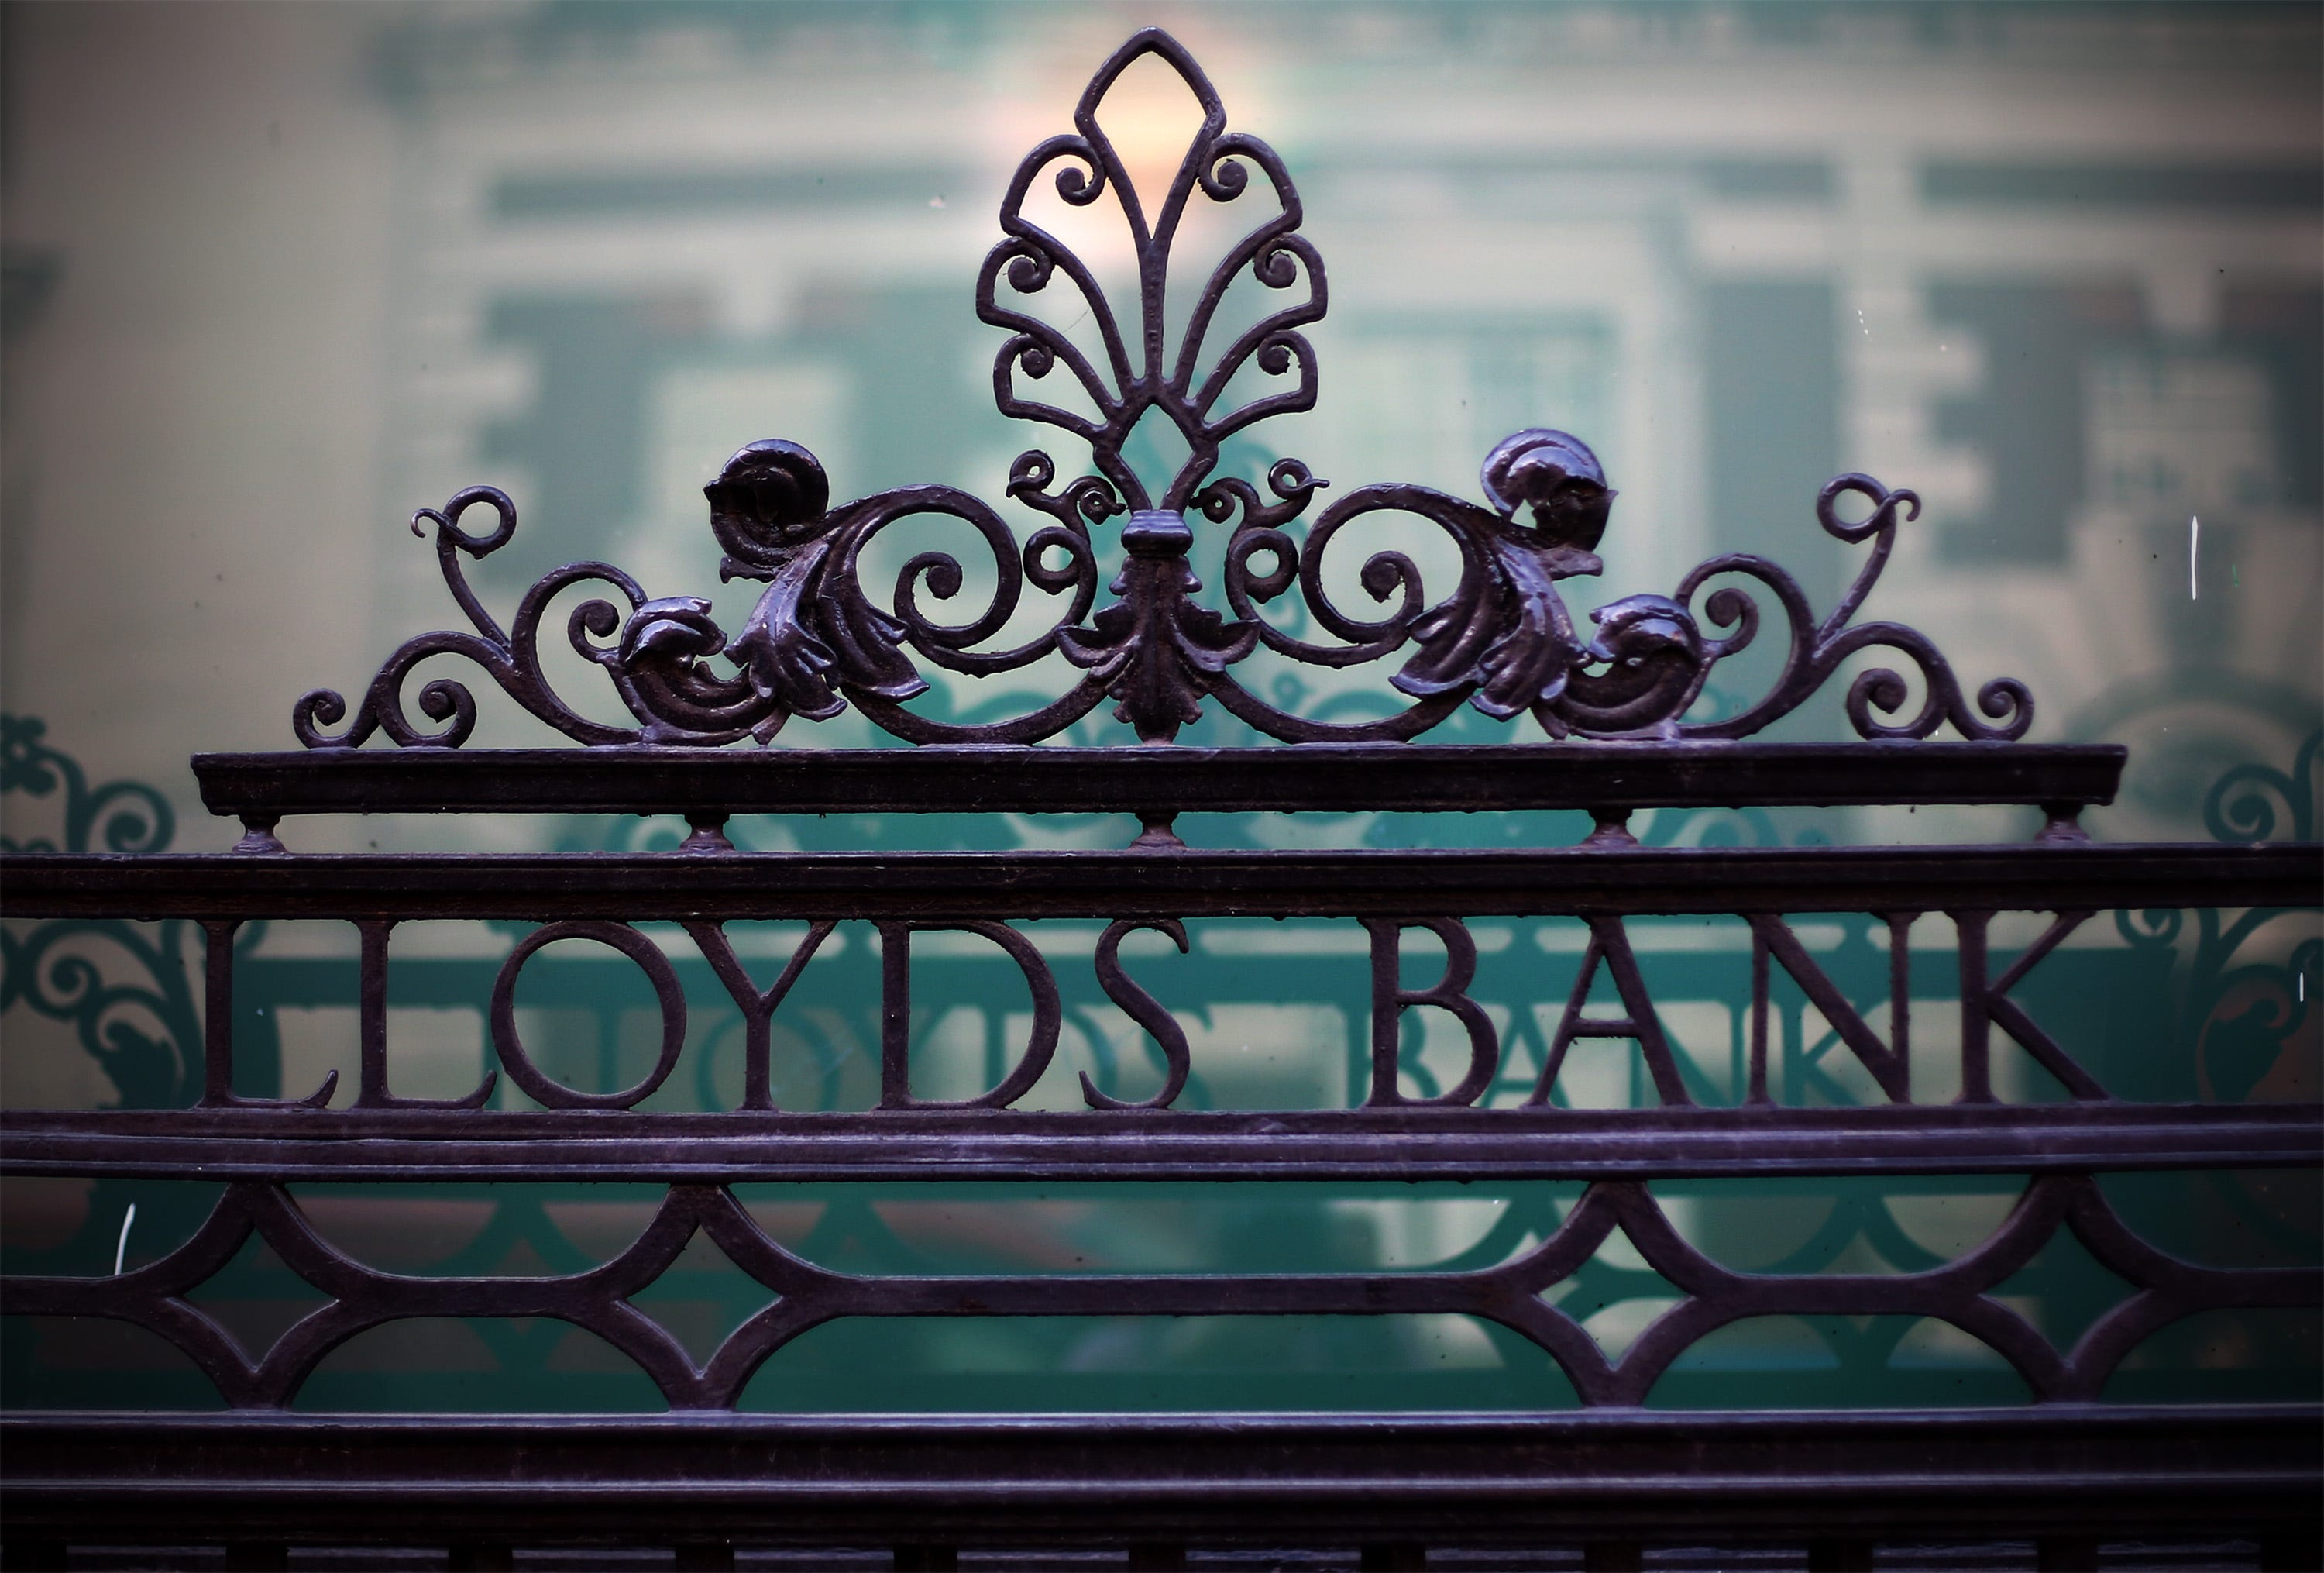 Surprise as U.K. reveals shares sale at state backed bank